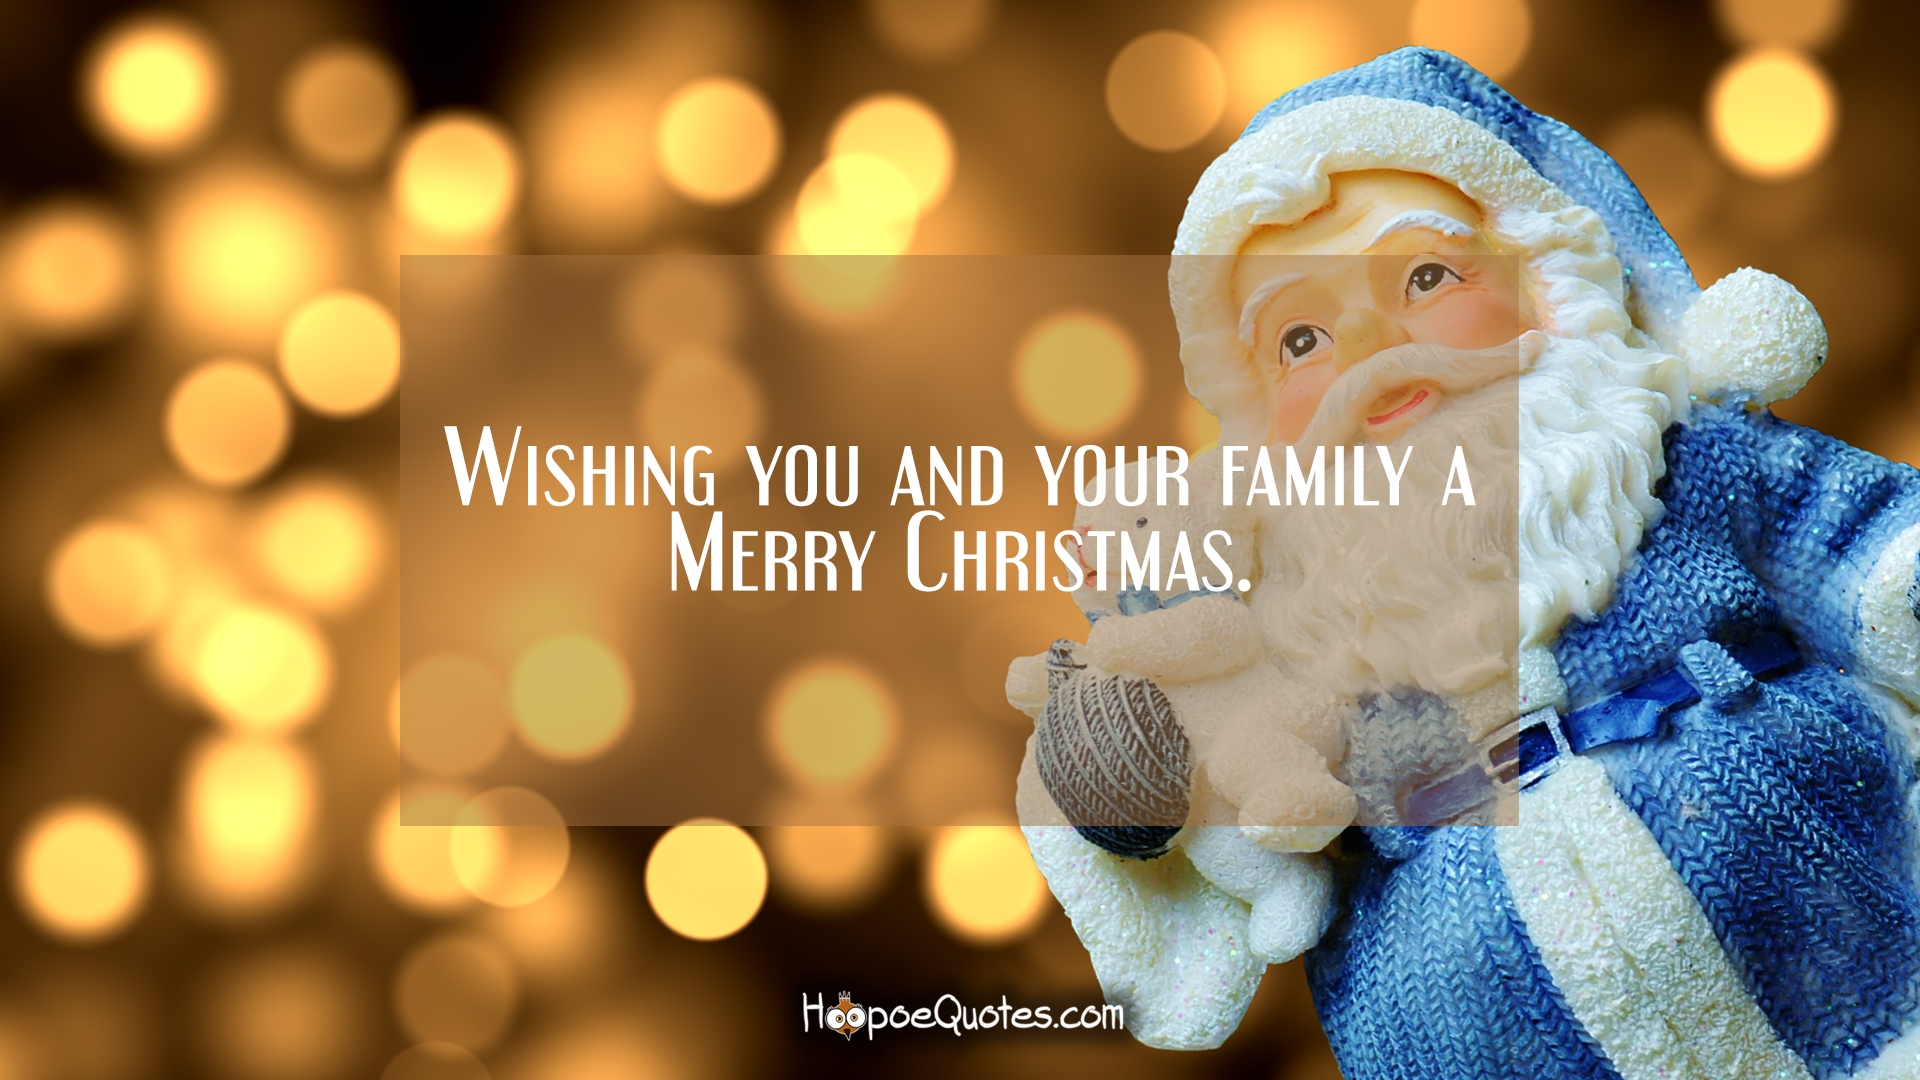 Wishing You And Your Family A Merry Christmas